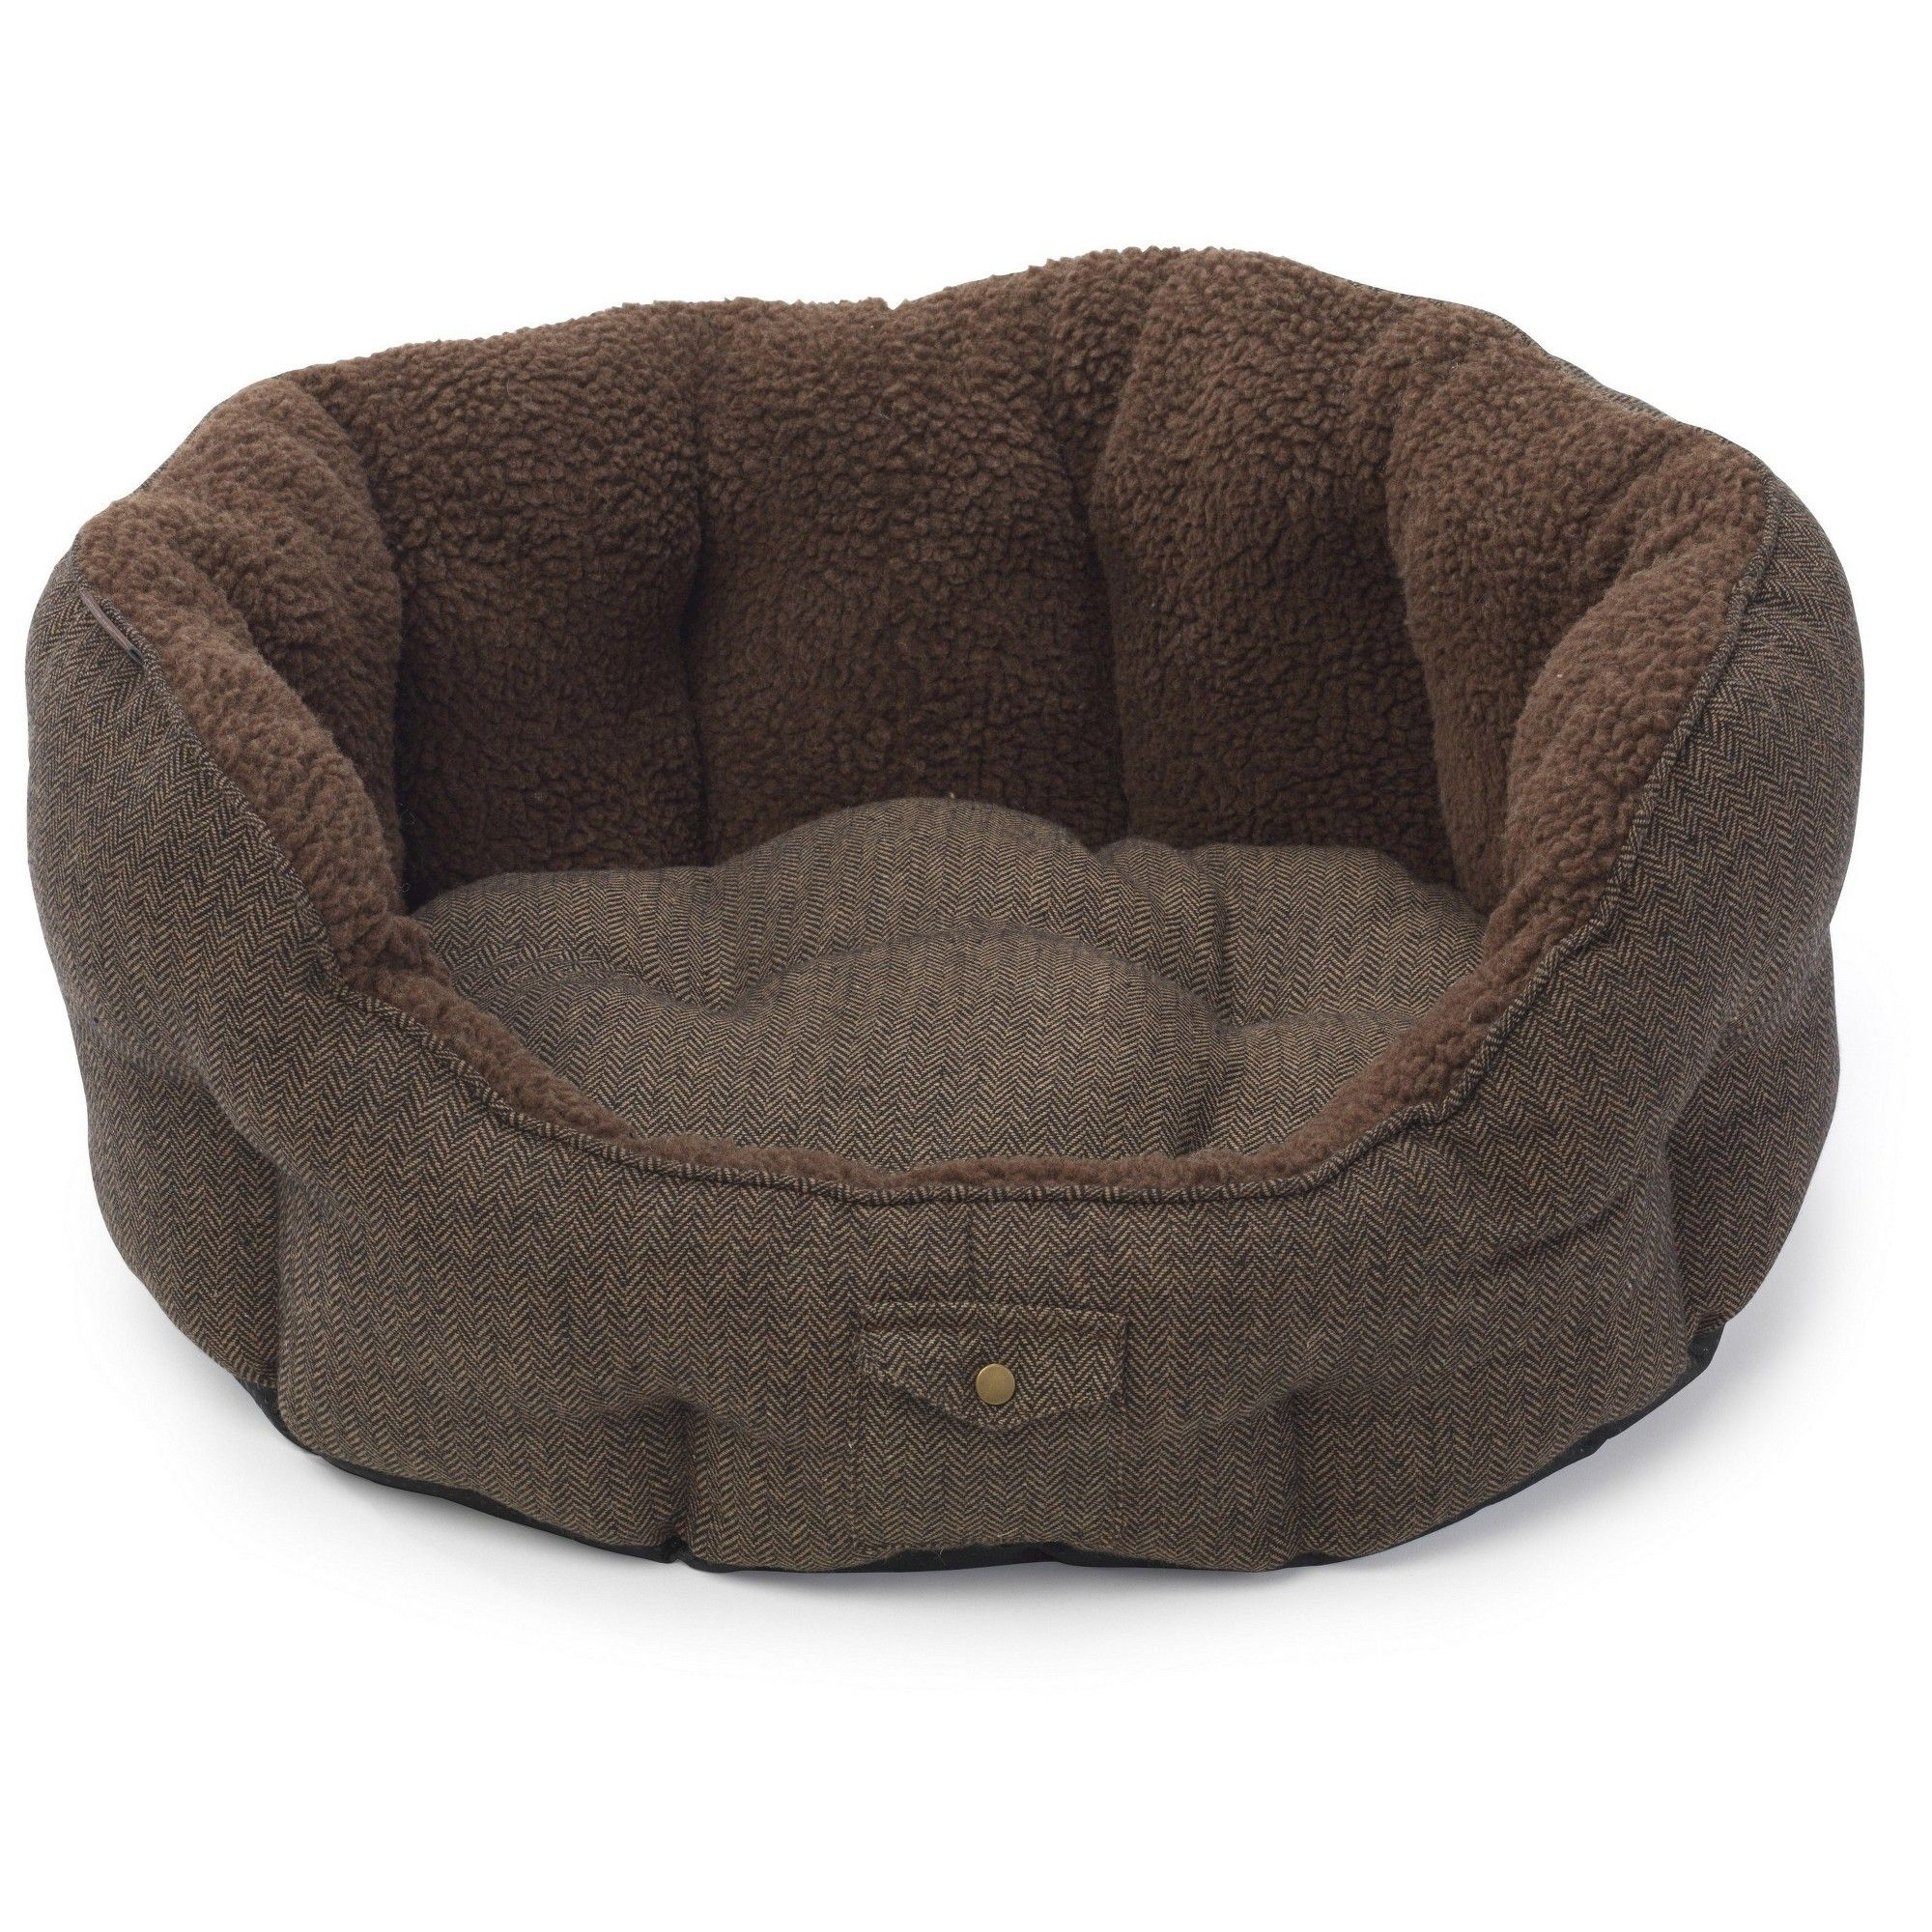 House Of Paws Harris Tweed Oval Pet Bed Large Oval Dog Bed